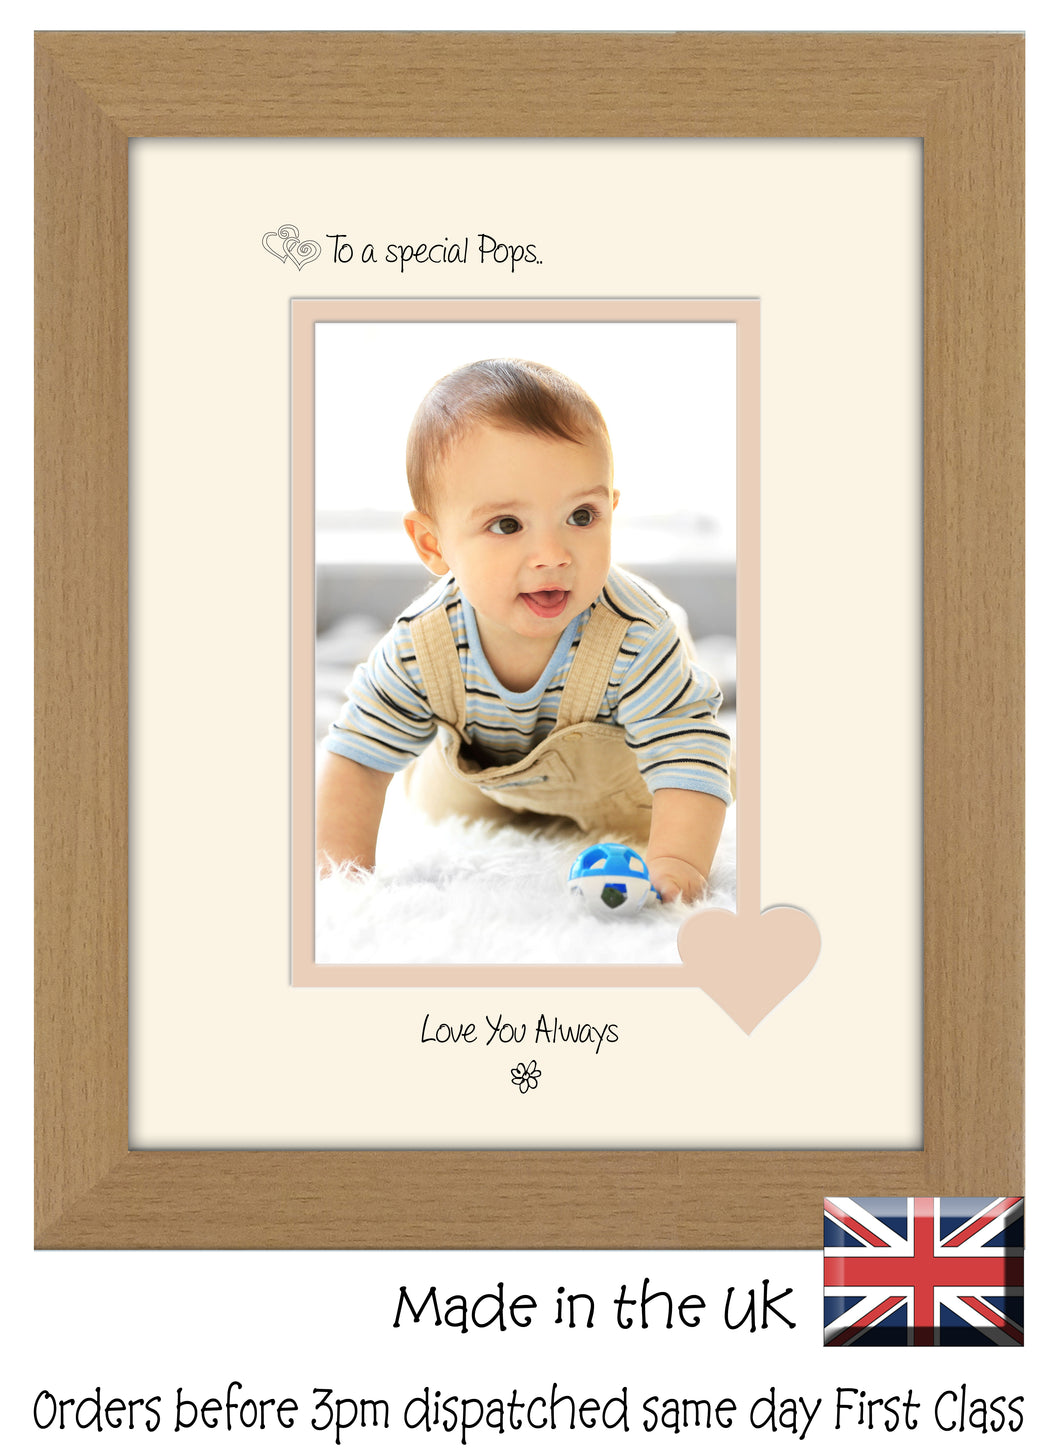 Pops Photo Frame - To a Special Pops ... Love you Always Portrait photo frame 6